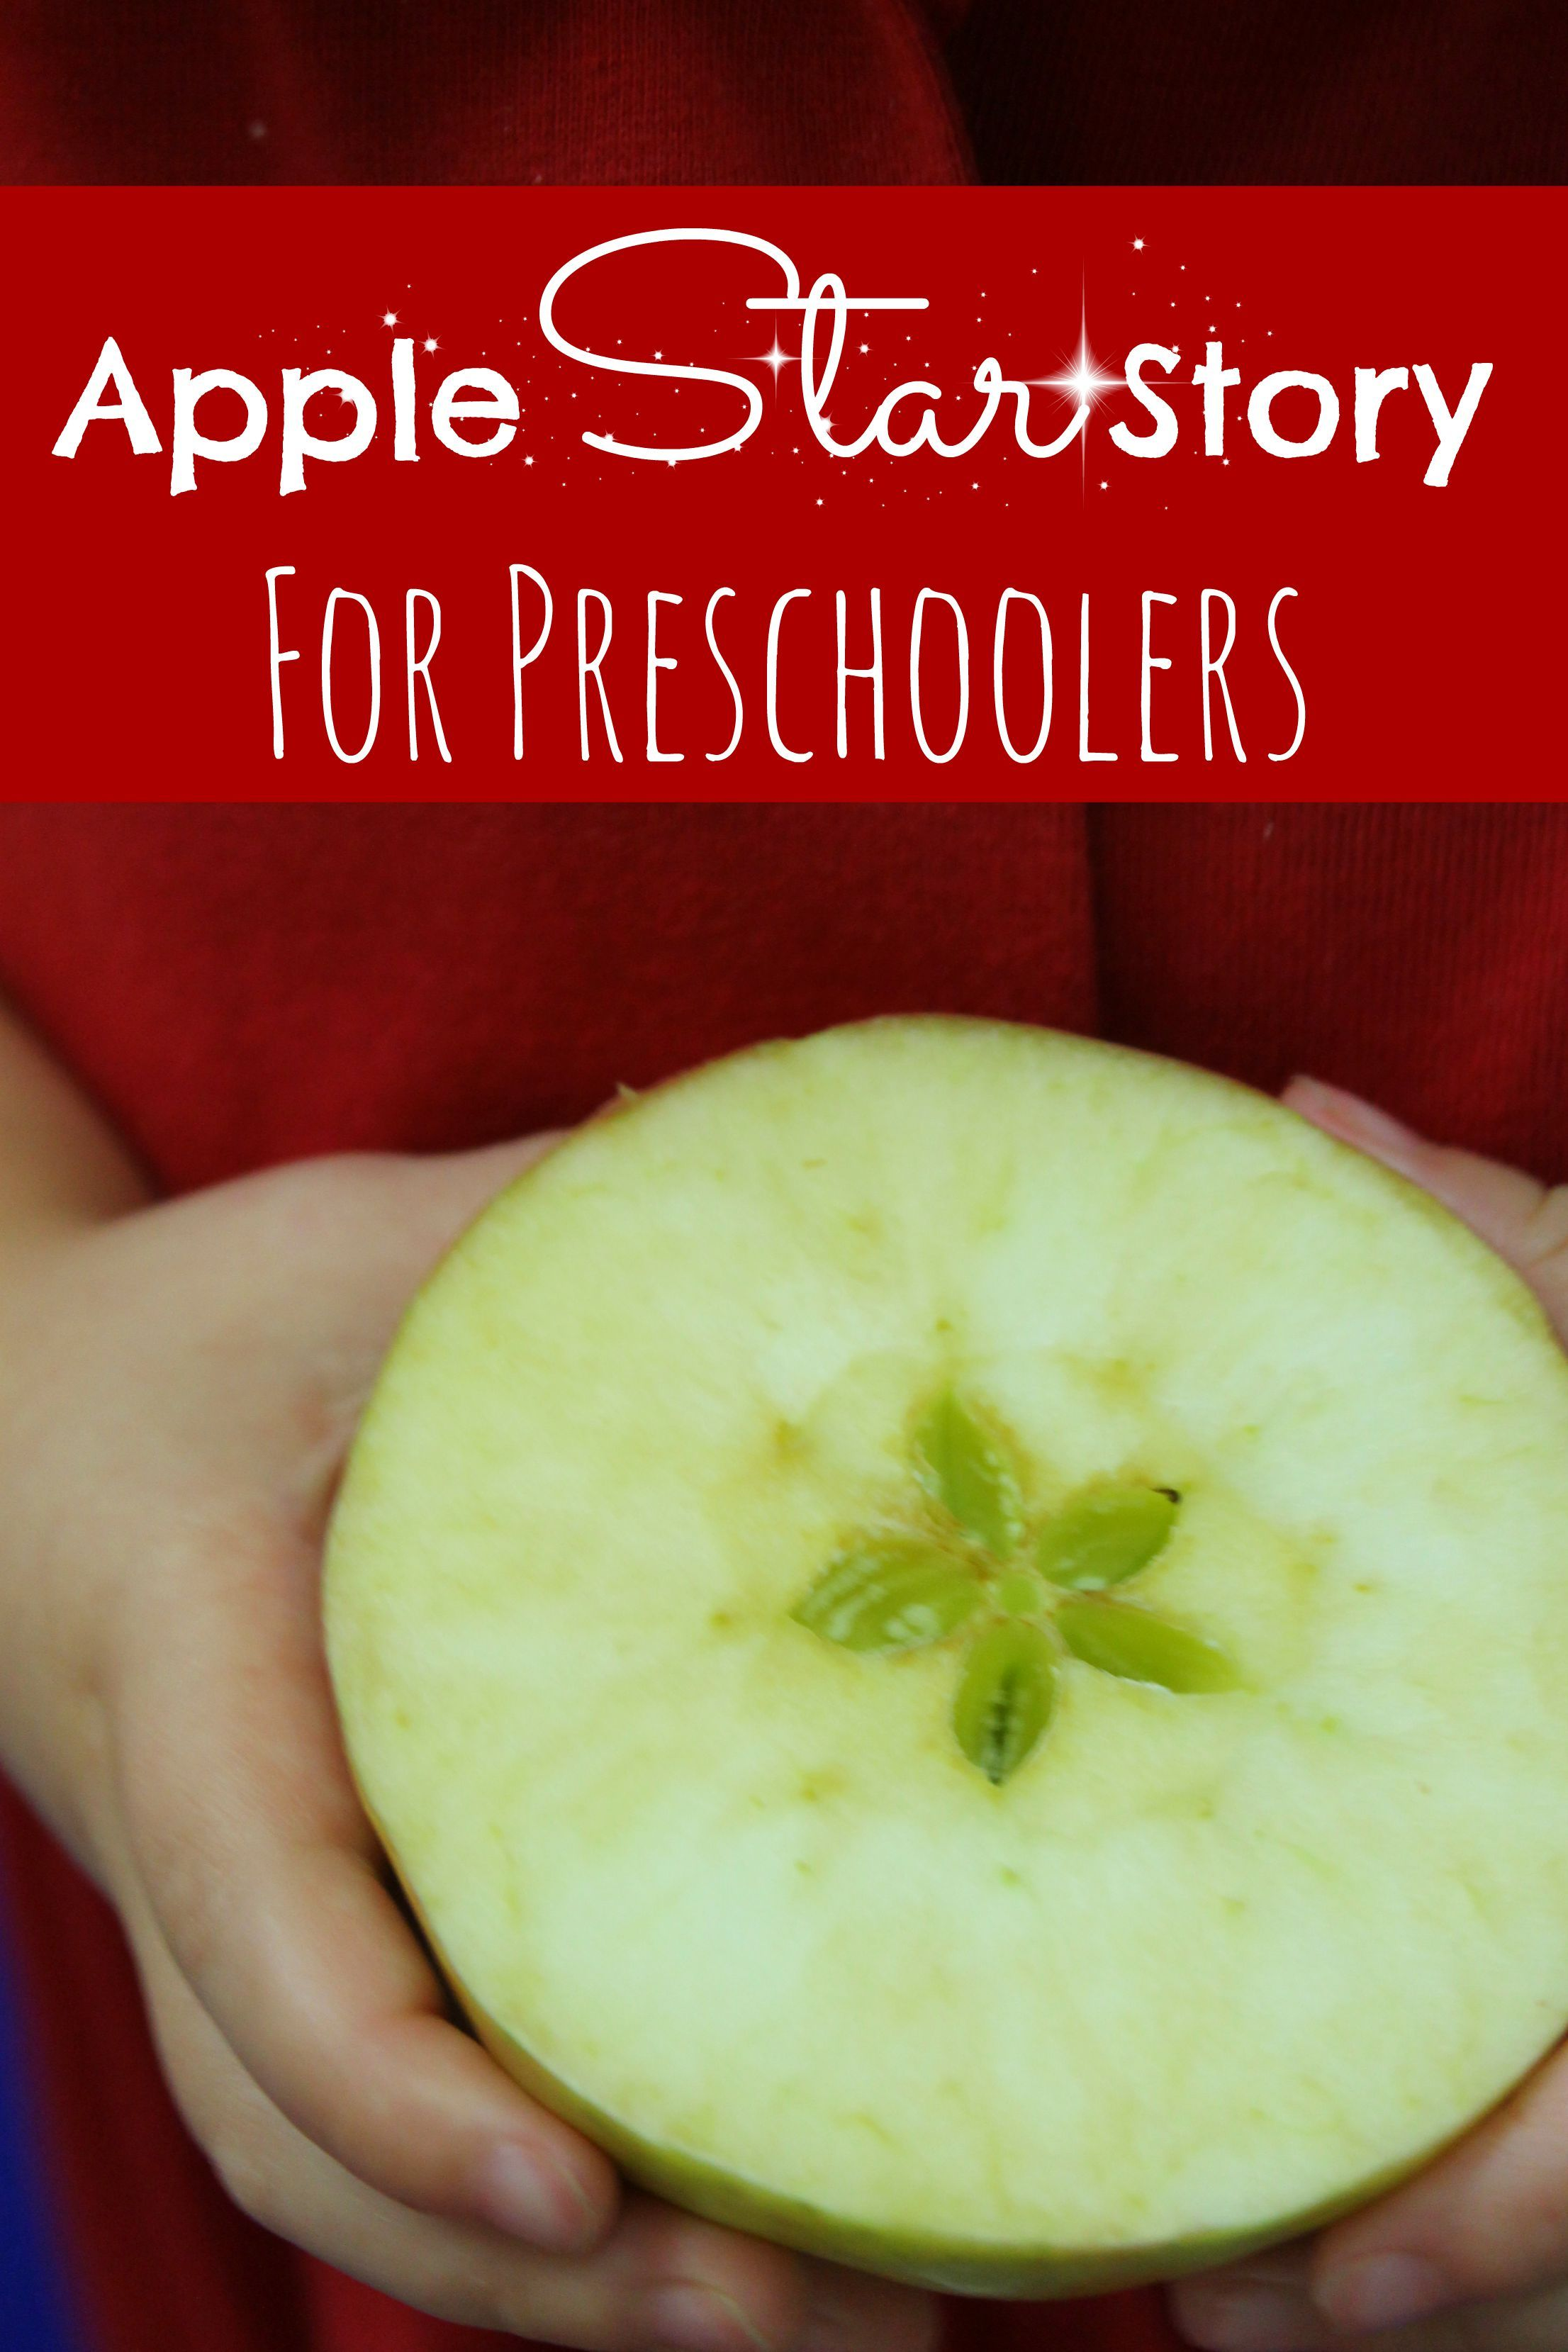 Apple STAR Story for Preschoolers | Apples, Star and School